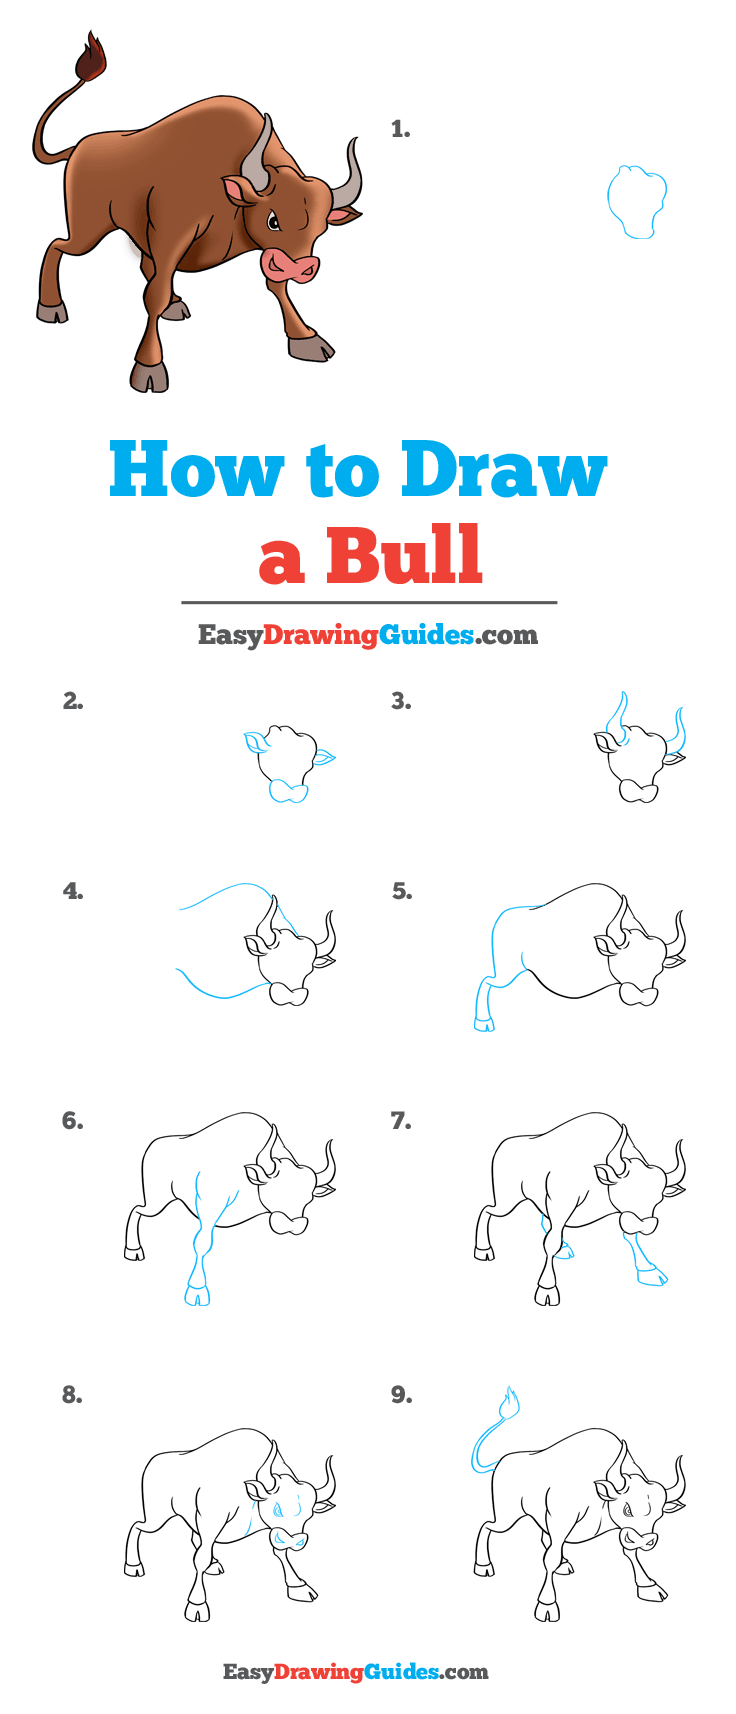 How to Draw Bull